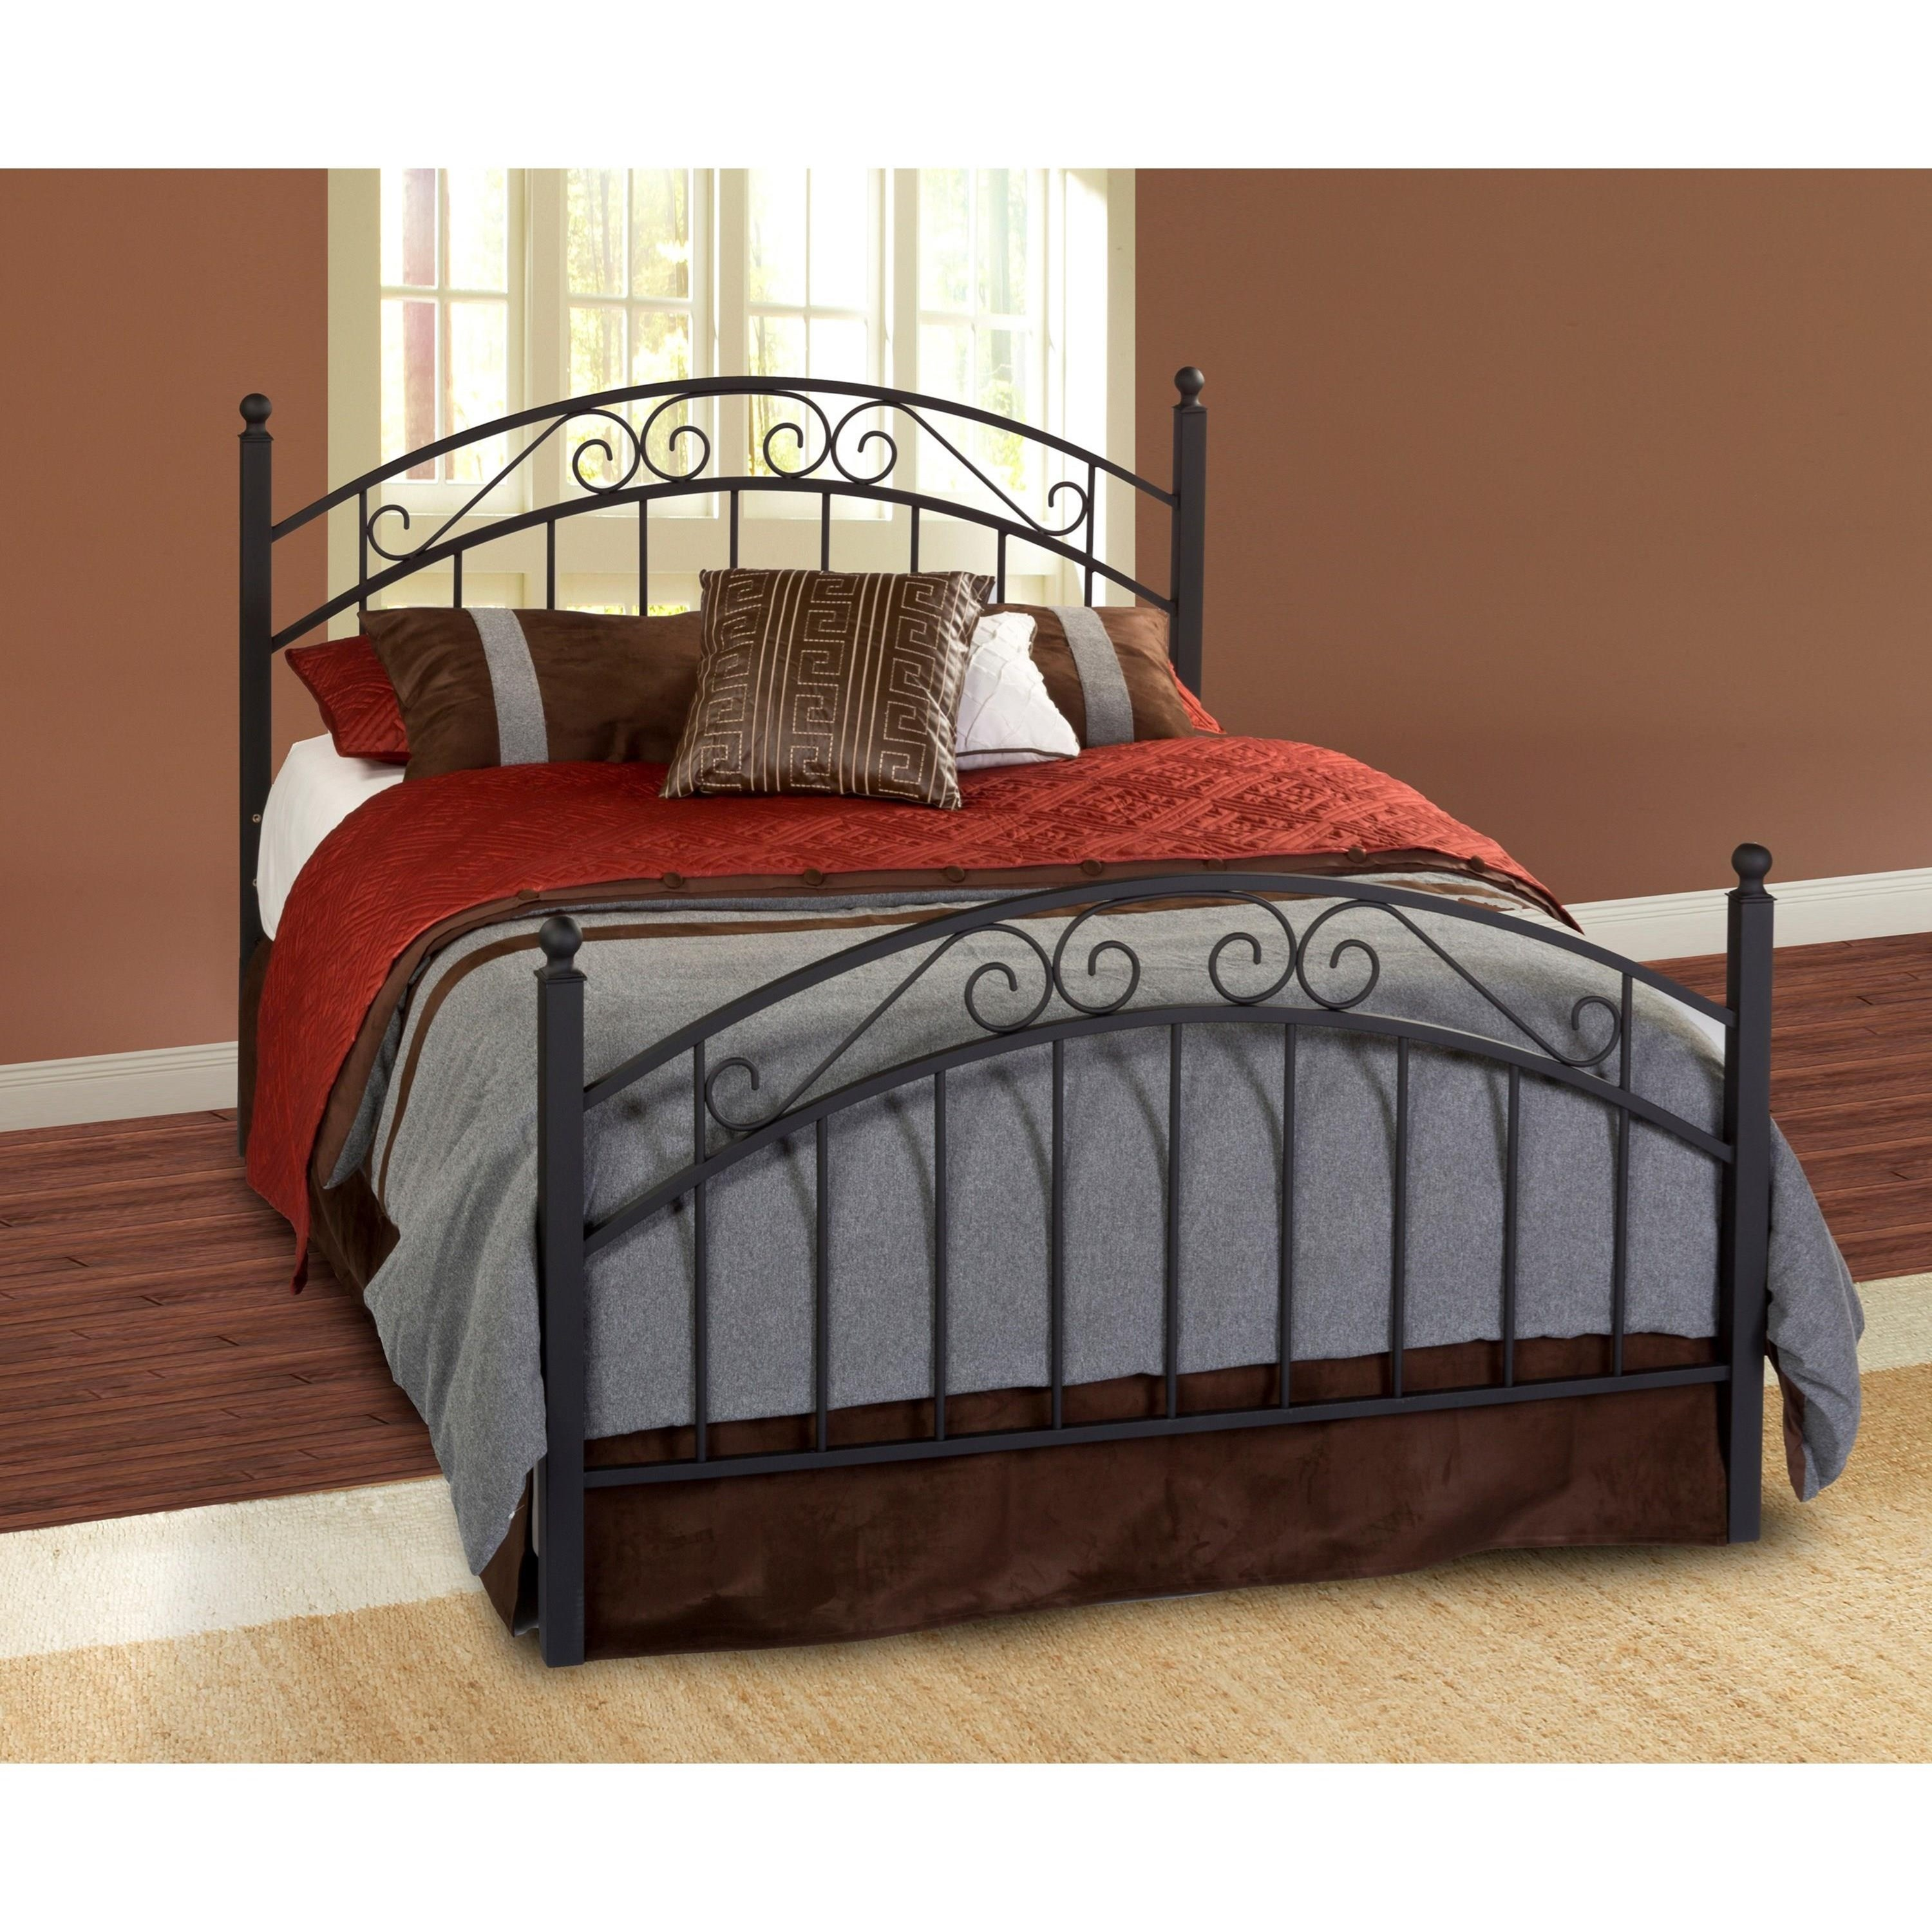 Hillsdale Metal Beds Twin Willow Bed Set - Item Number: 224BTW